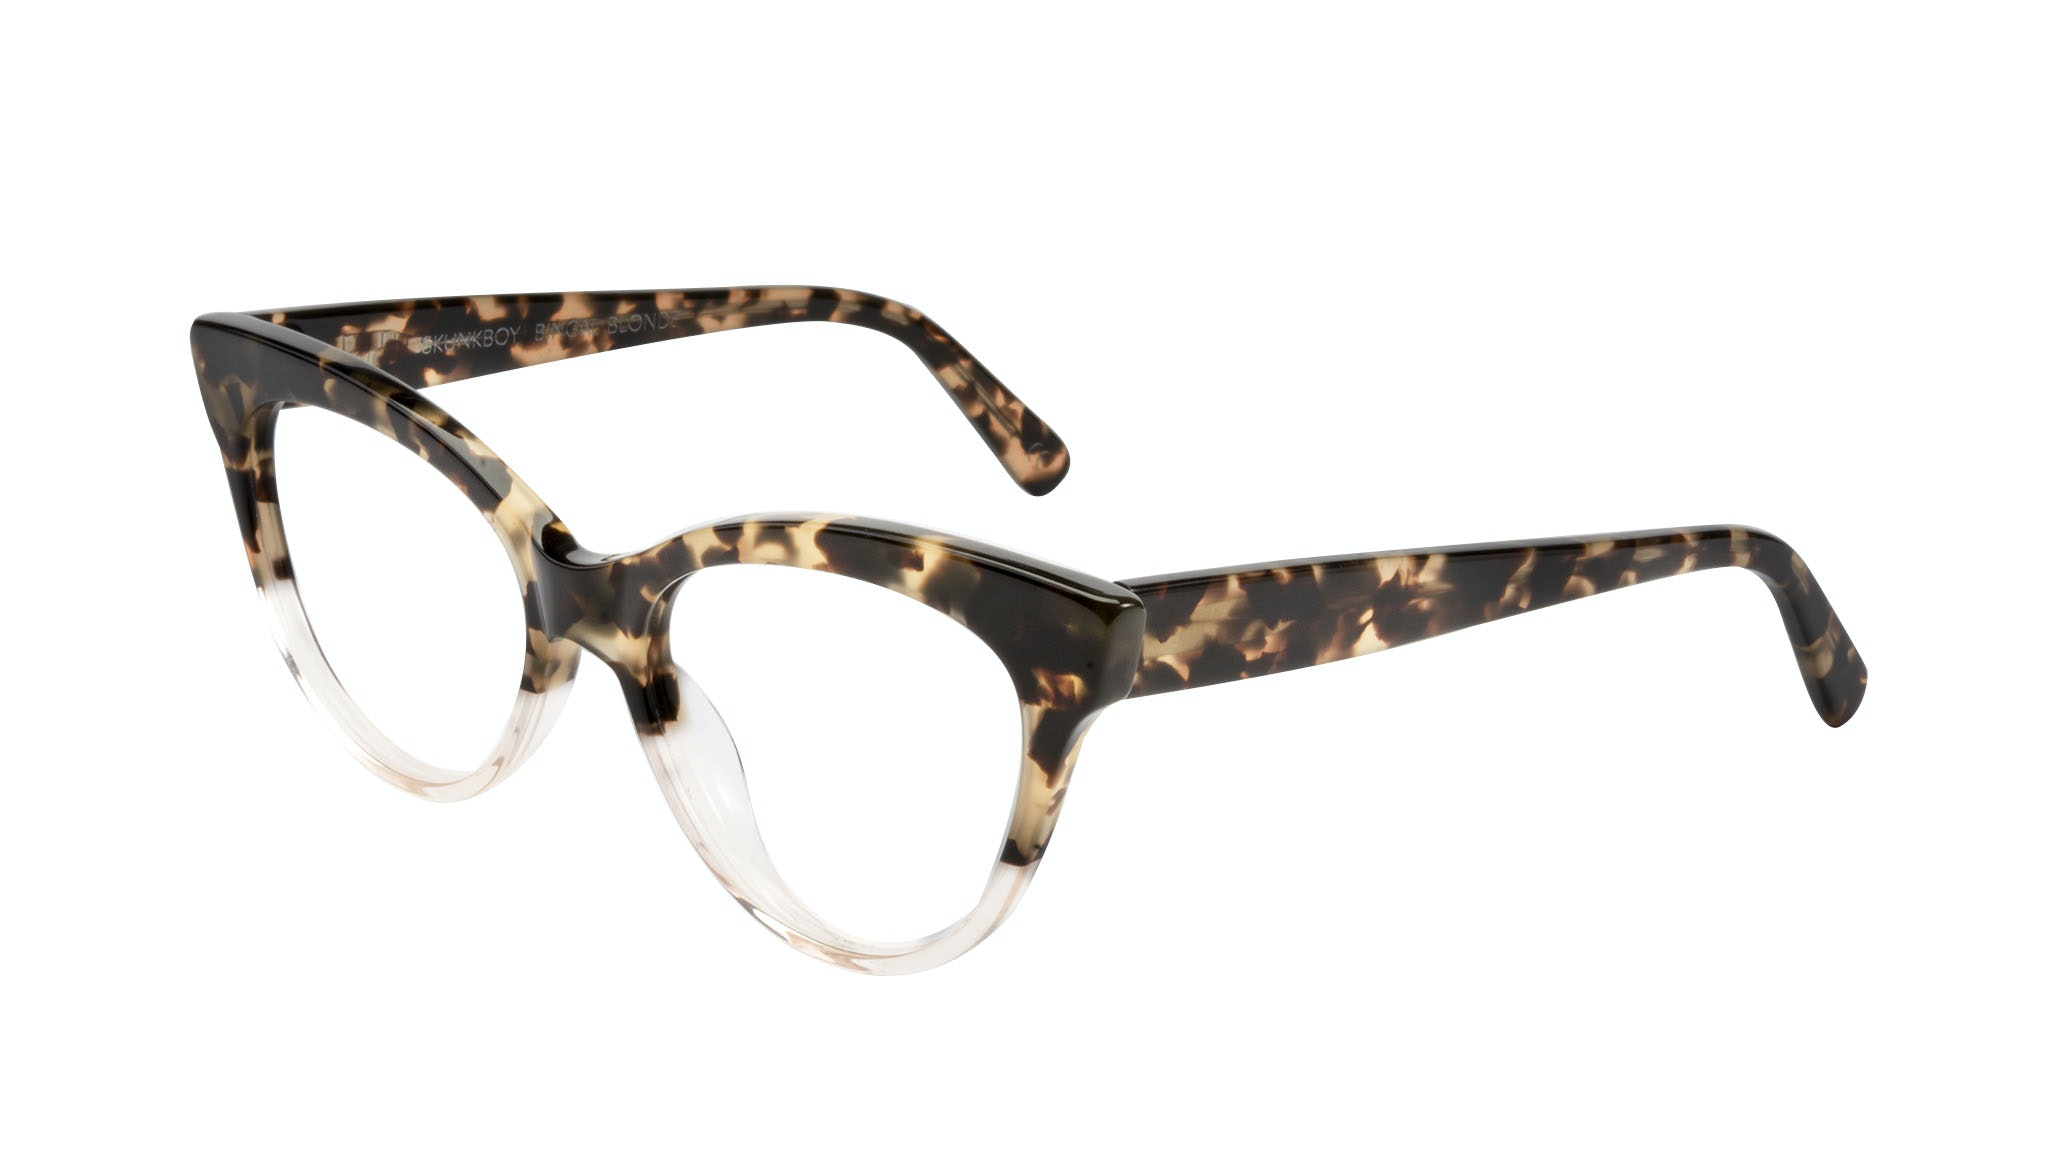 Affordable Fashion Glasses Cat Eye Daring Cateye Eyeglasses Women SkunkBoy Champagne Tort Tilt